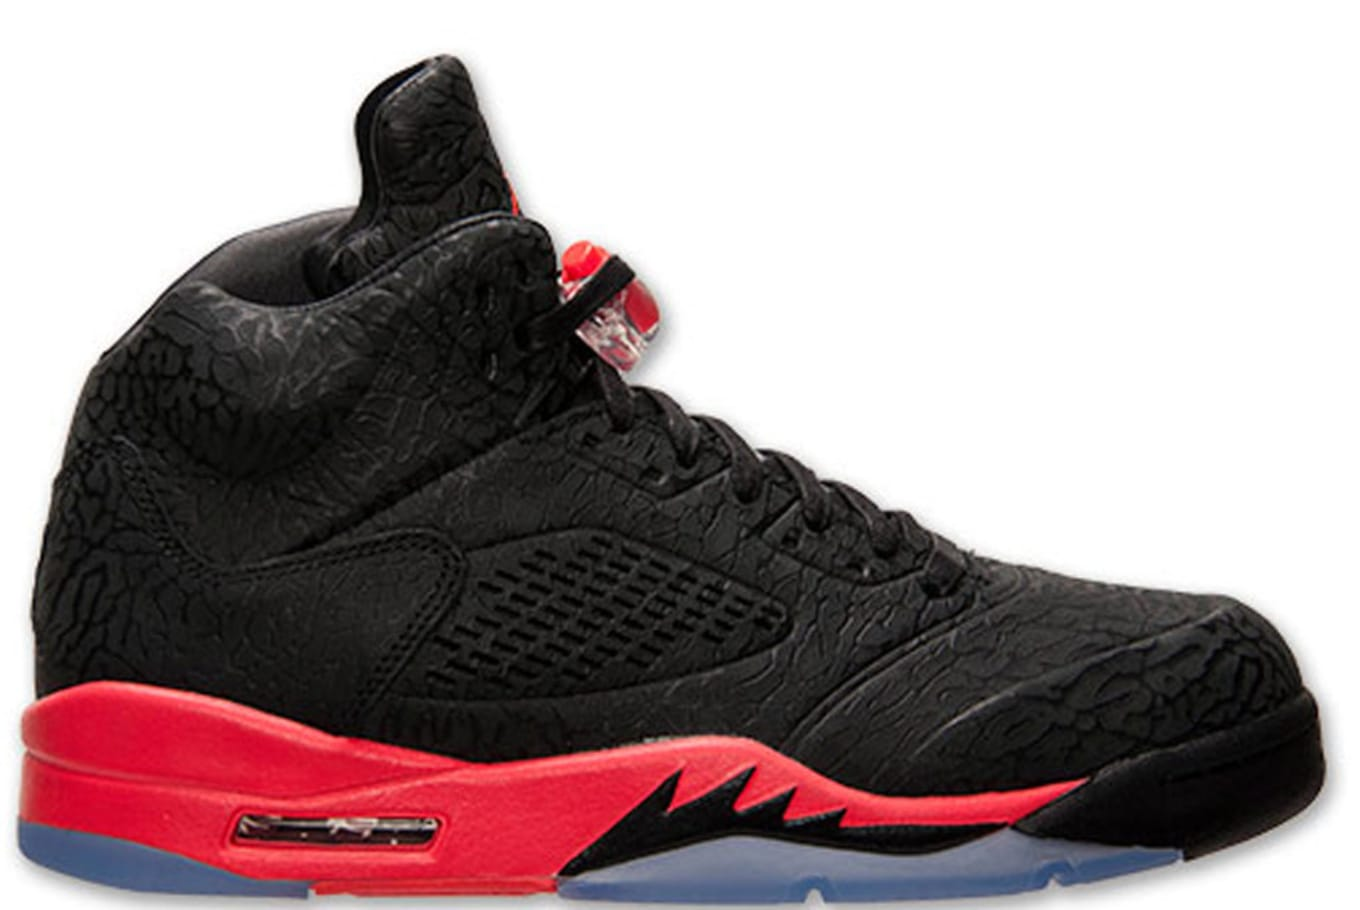 los angeles 433bf d7037 Air Jordan 5: The Definitive Guide to Colorways | Sole Collector